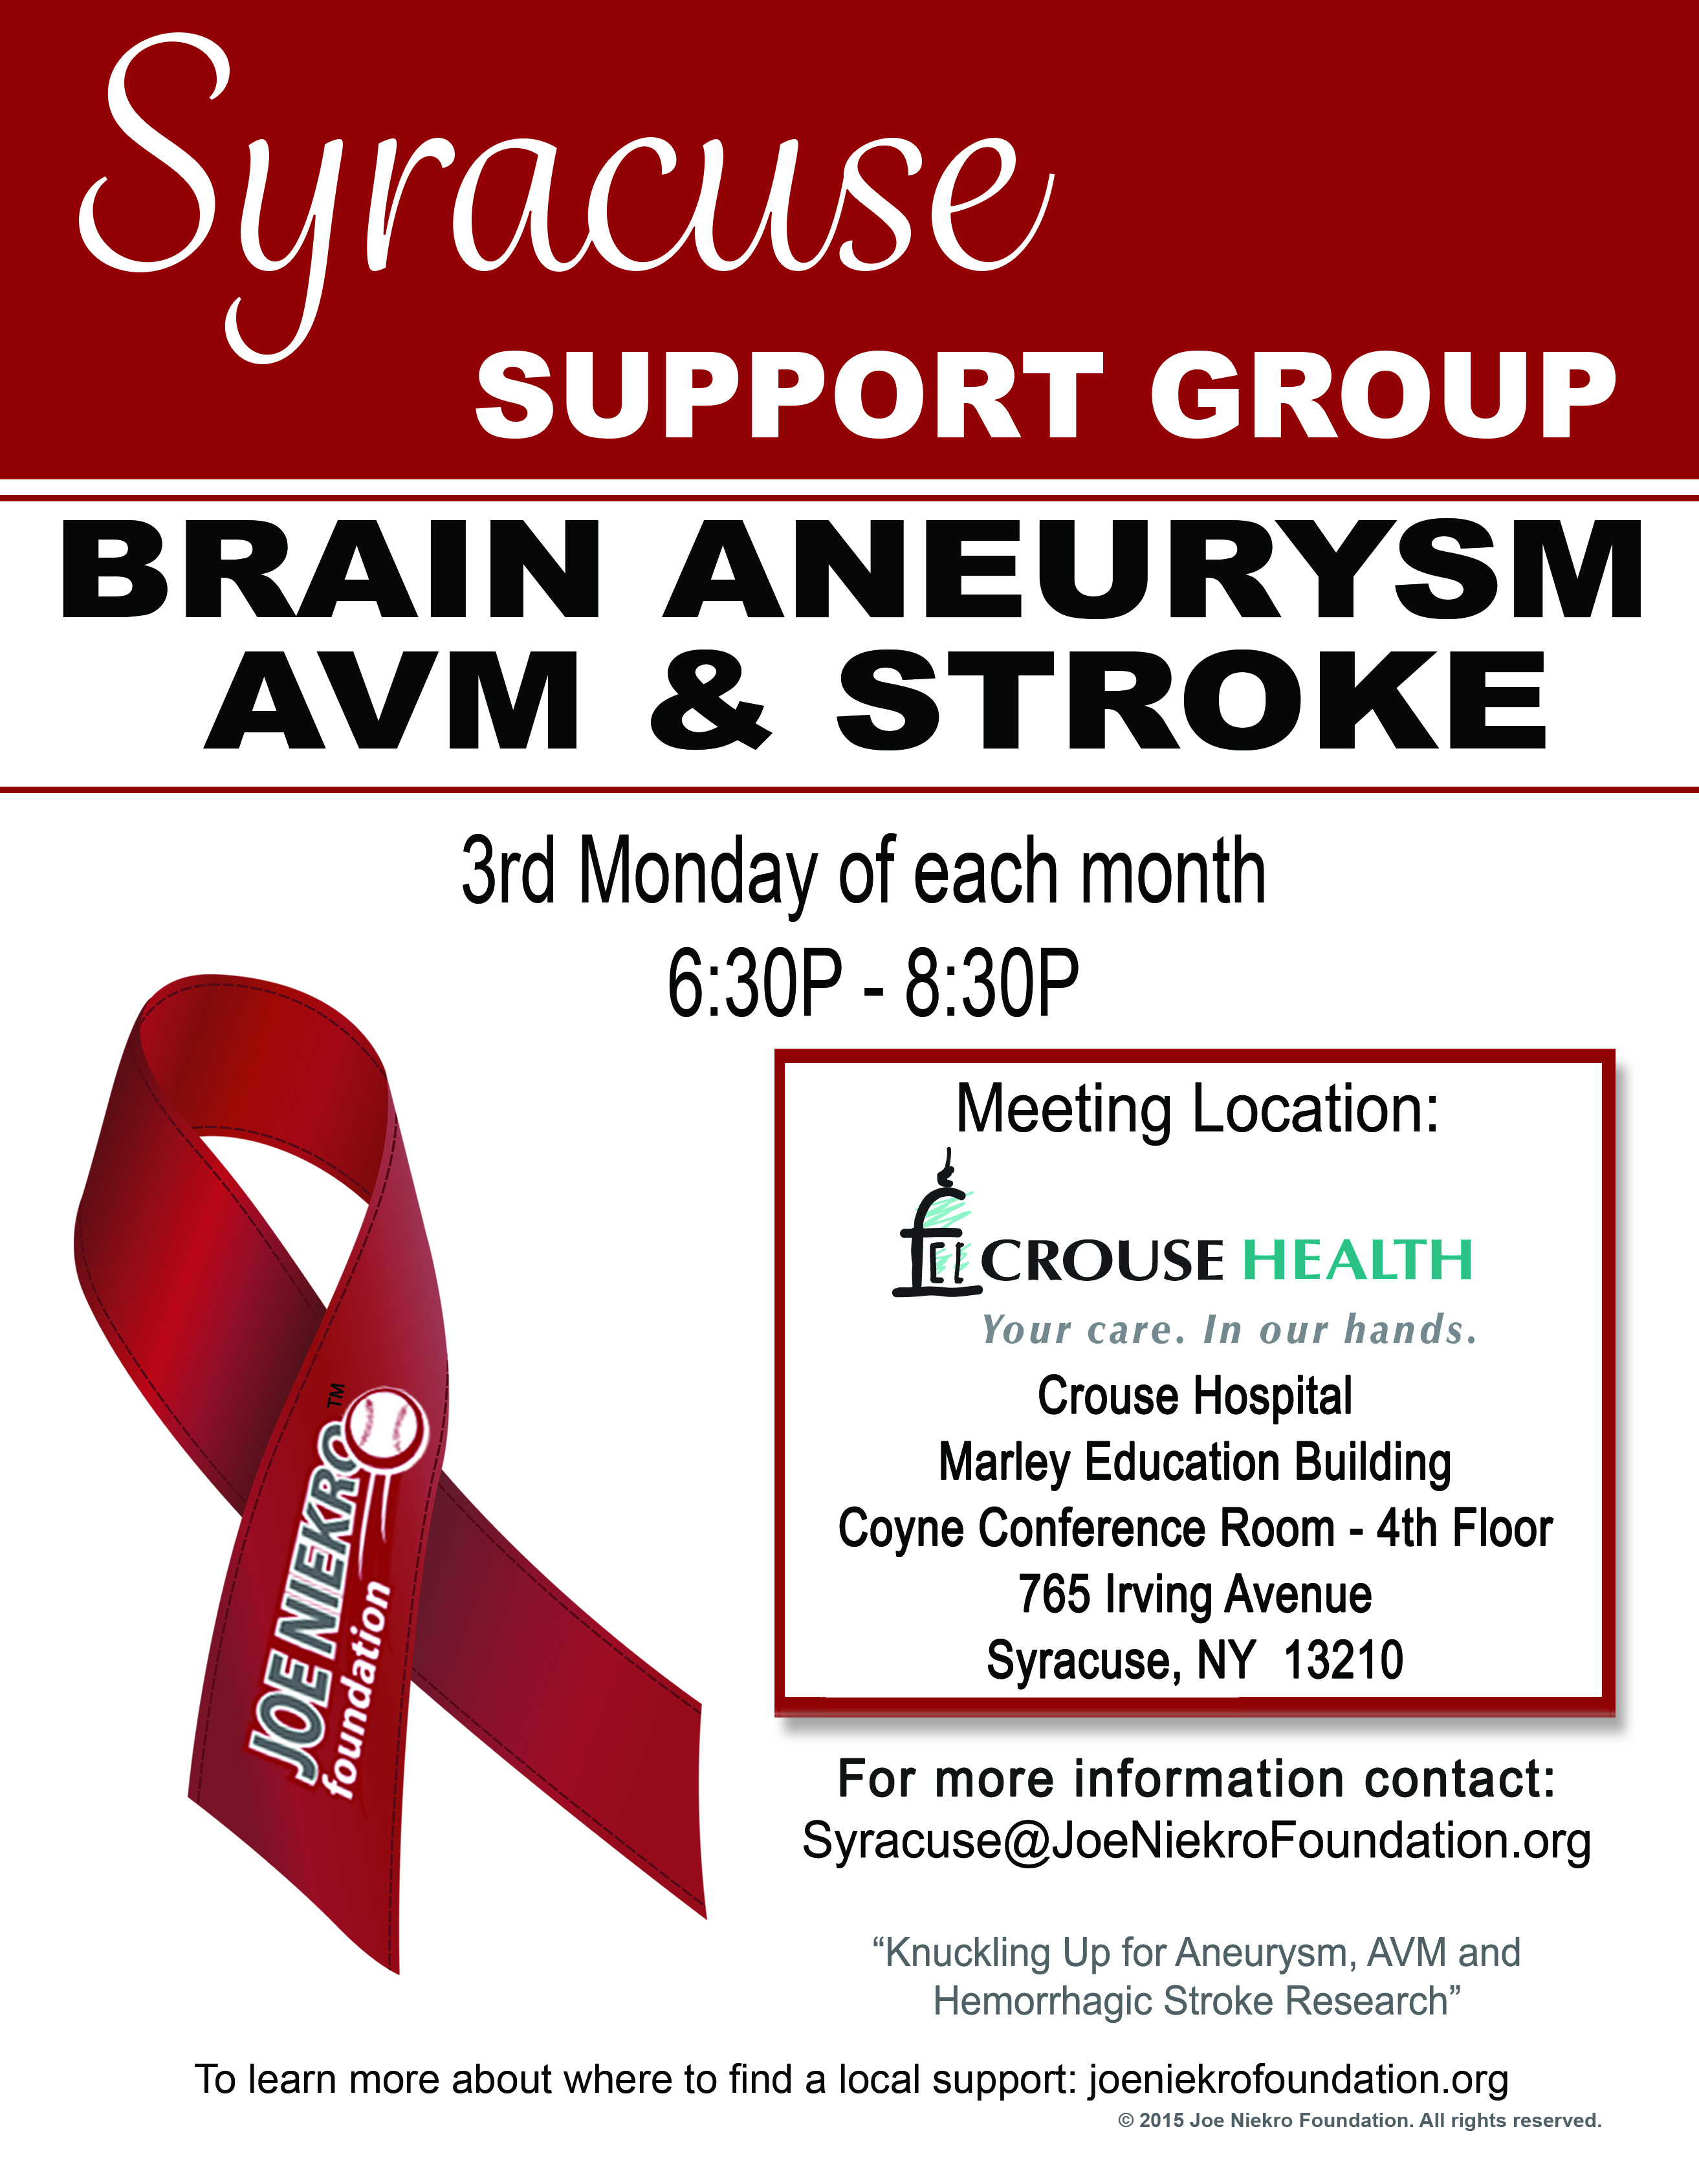 http://www.joeniekrofoundation.com/patient-caregiver-support/support-groups/locations/attachment/syracuse-poster-2/